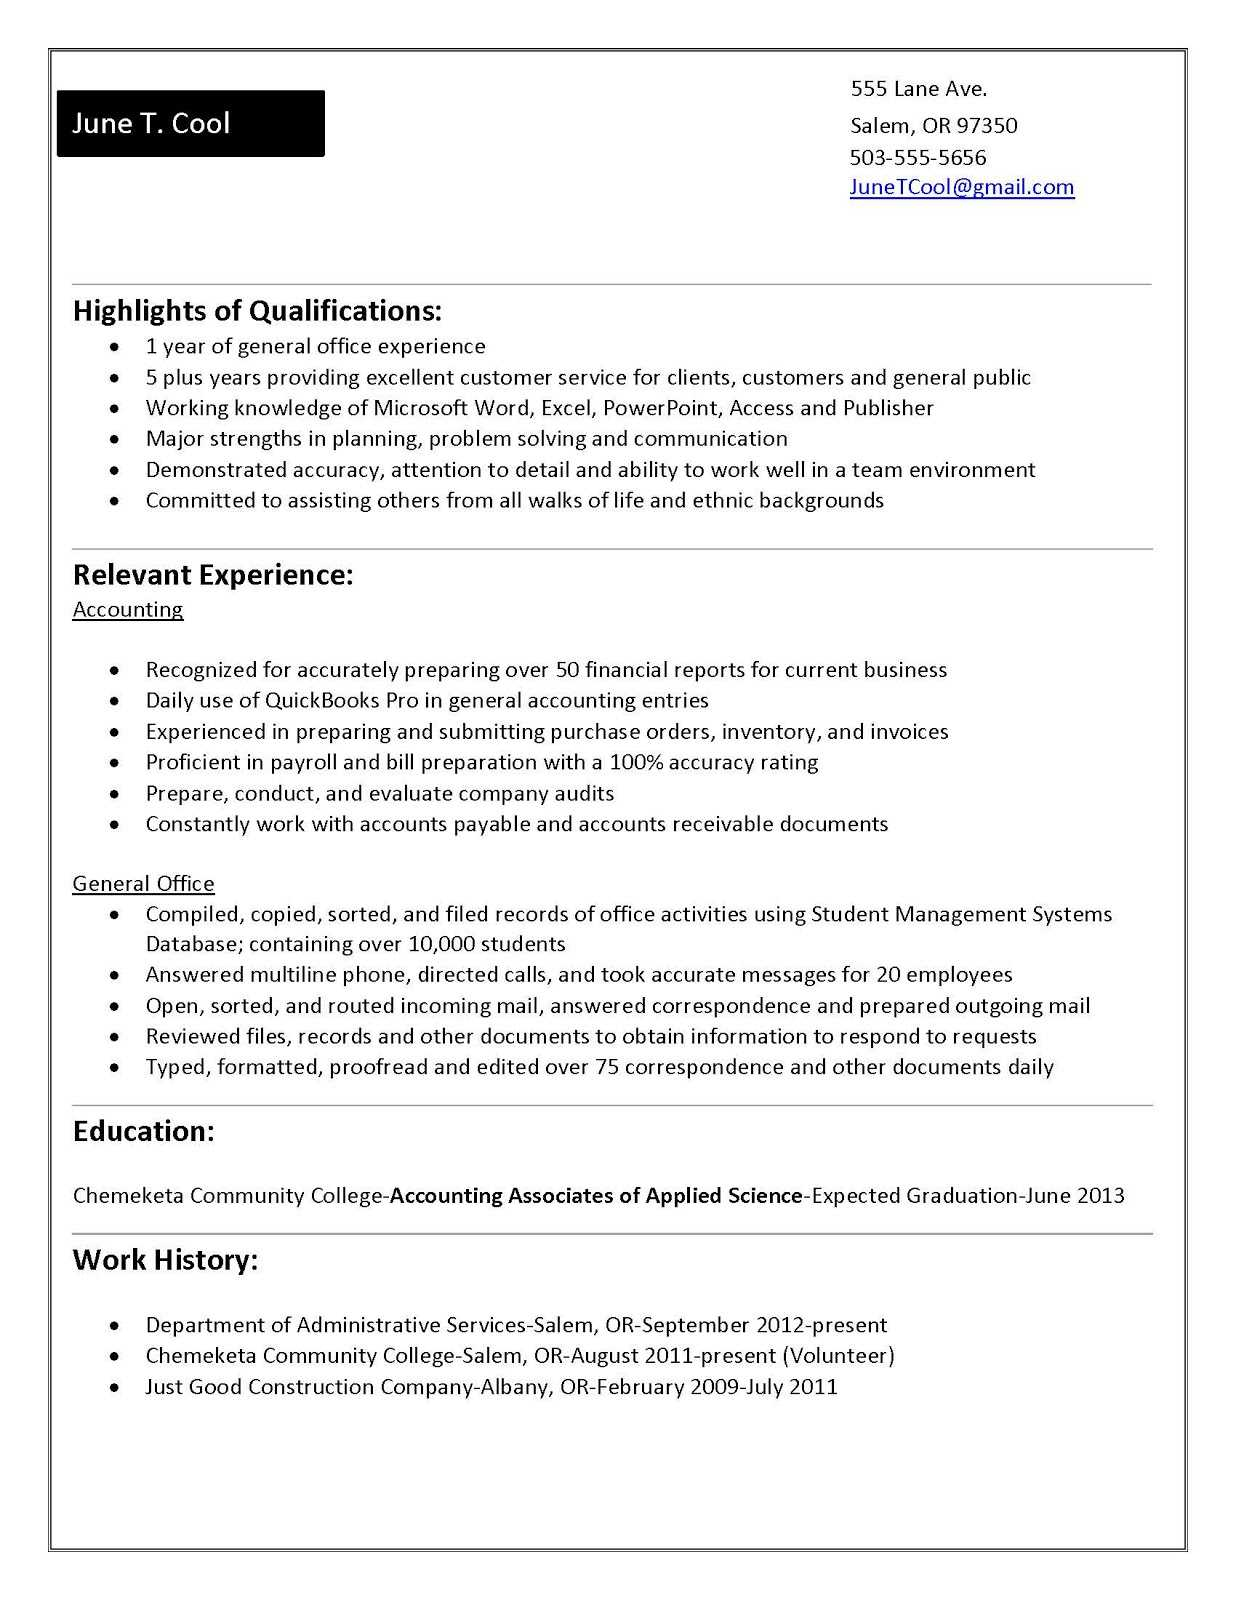 Accounting Functional Resume: College Student Resume For College Student Resume Template Microsoft Word